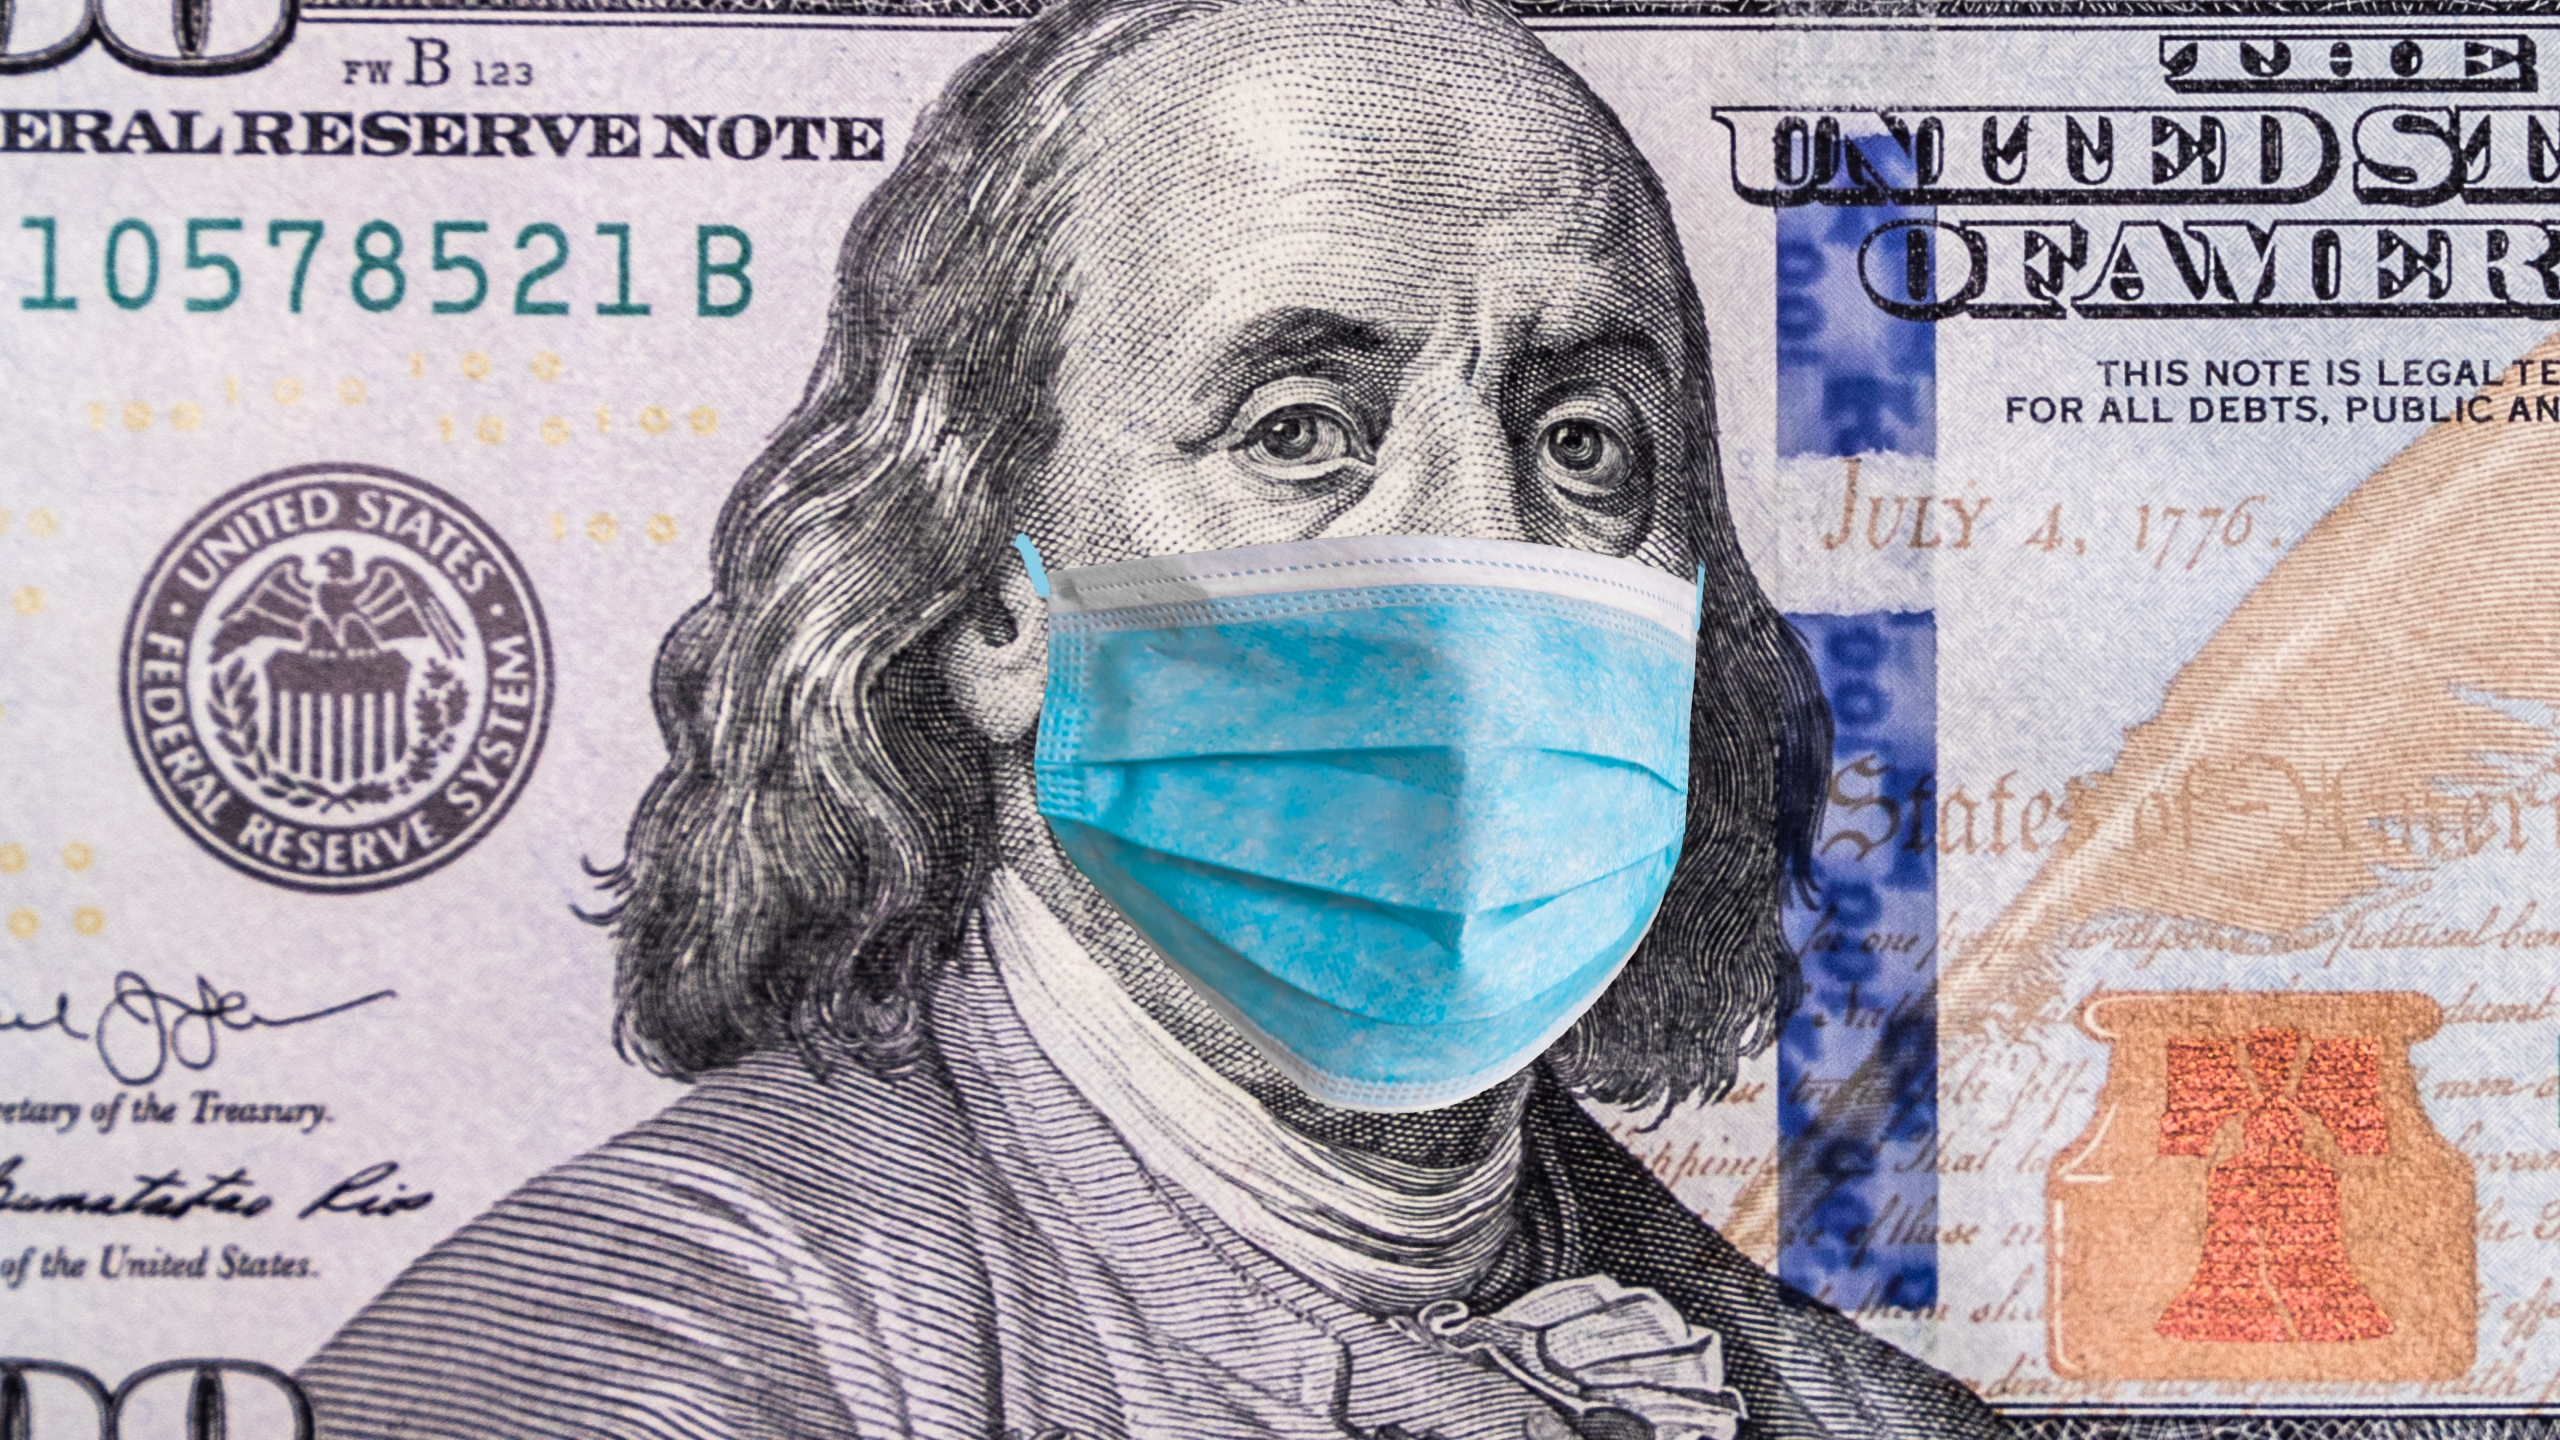 hundred dollar bill with face mask